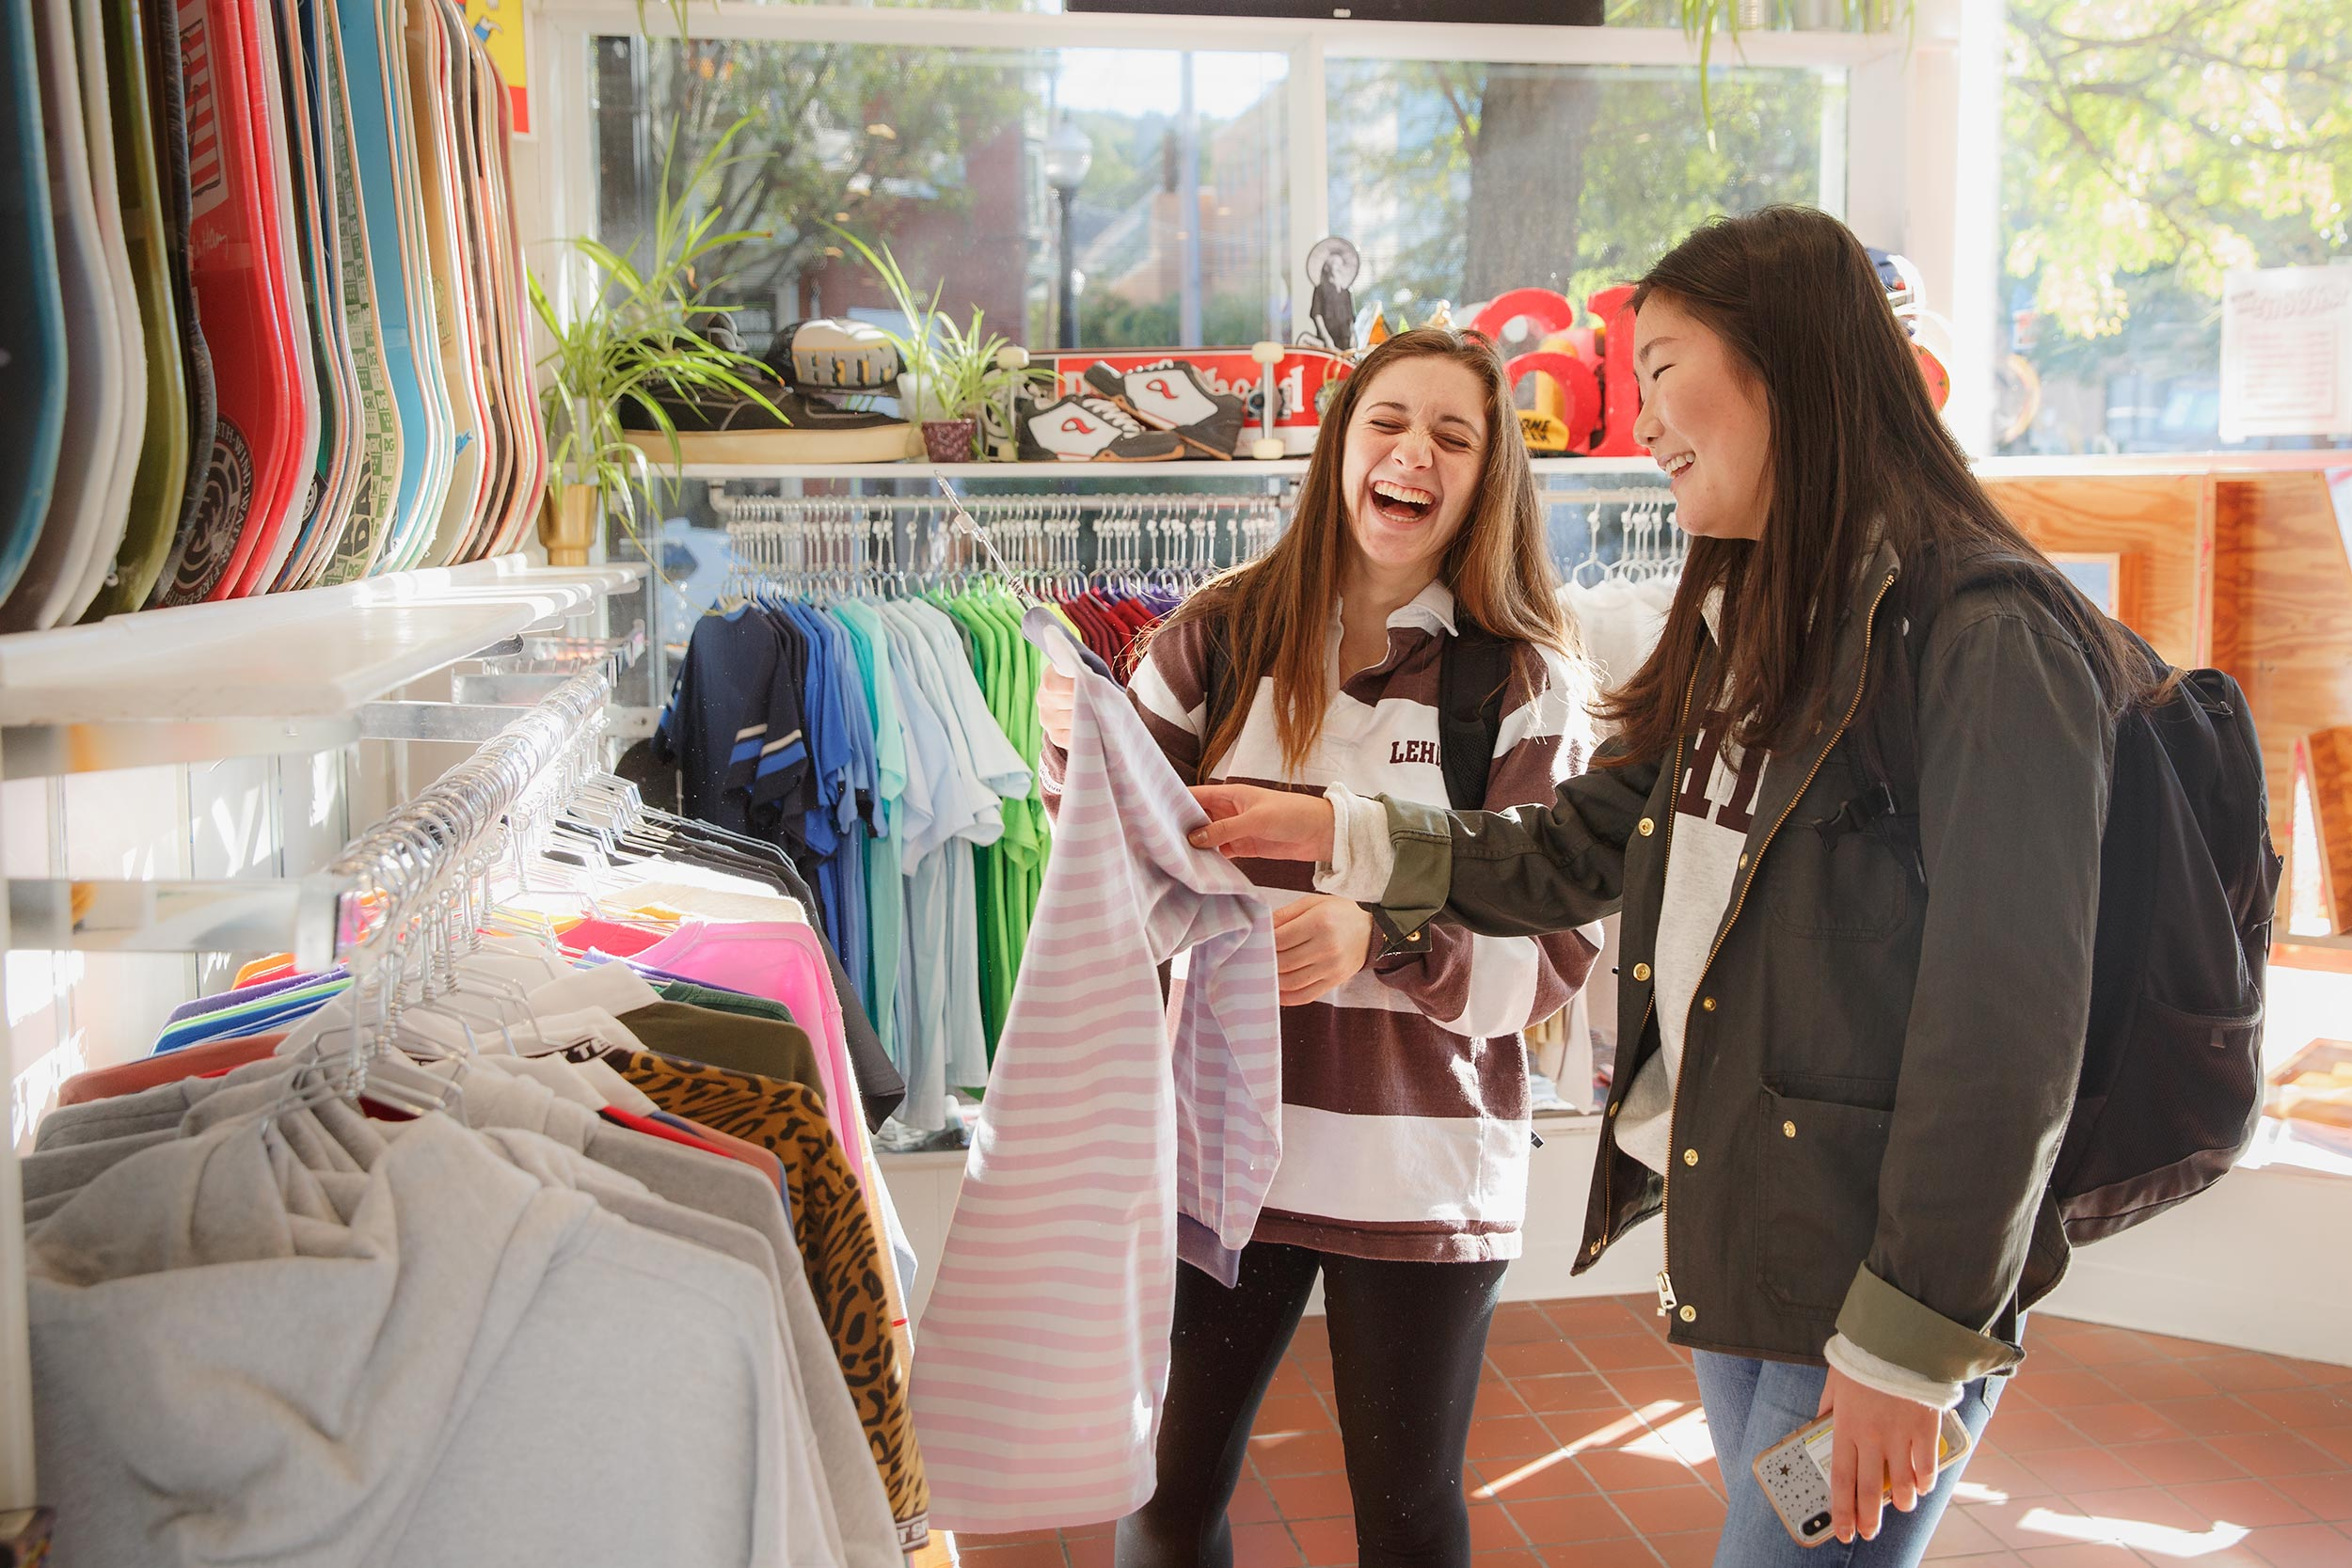 shopping_students_education_photographer_higher_ed_by_matt_stanley_5254